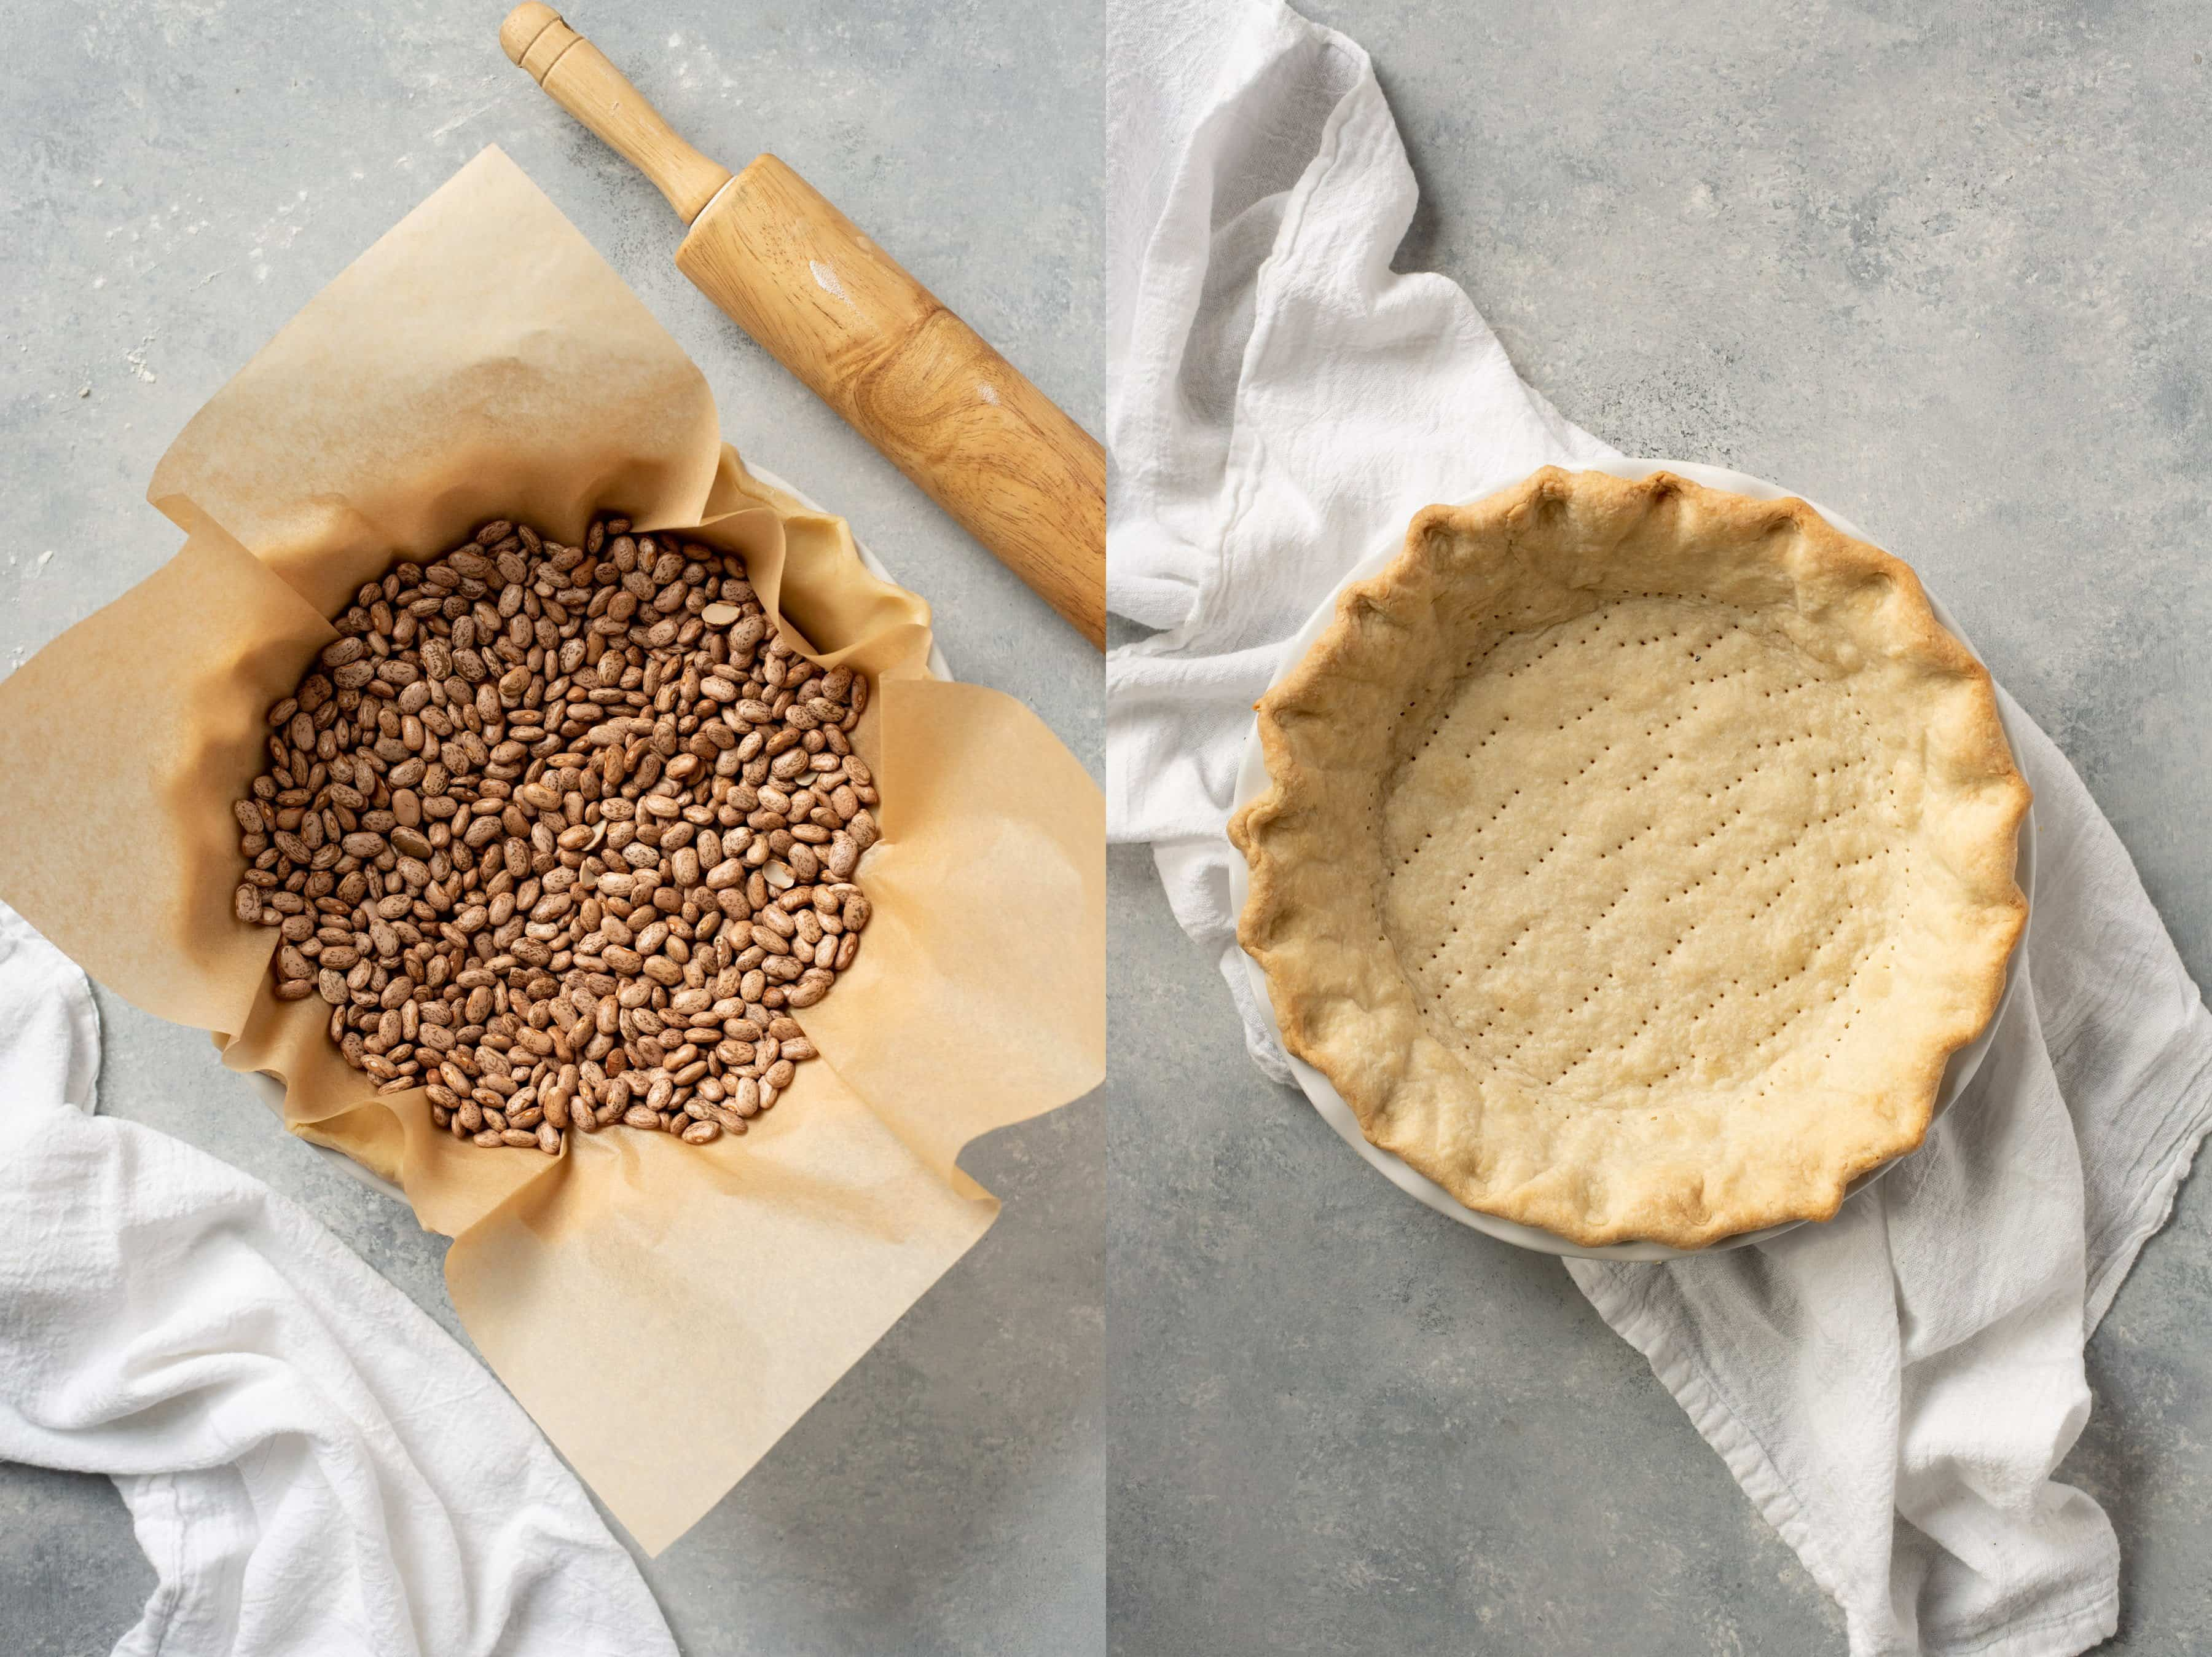 Side-by-side shot of blind baking a pie crust -- filled with dried beans and without